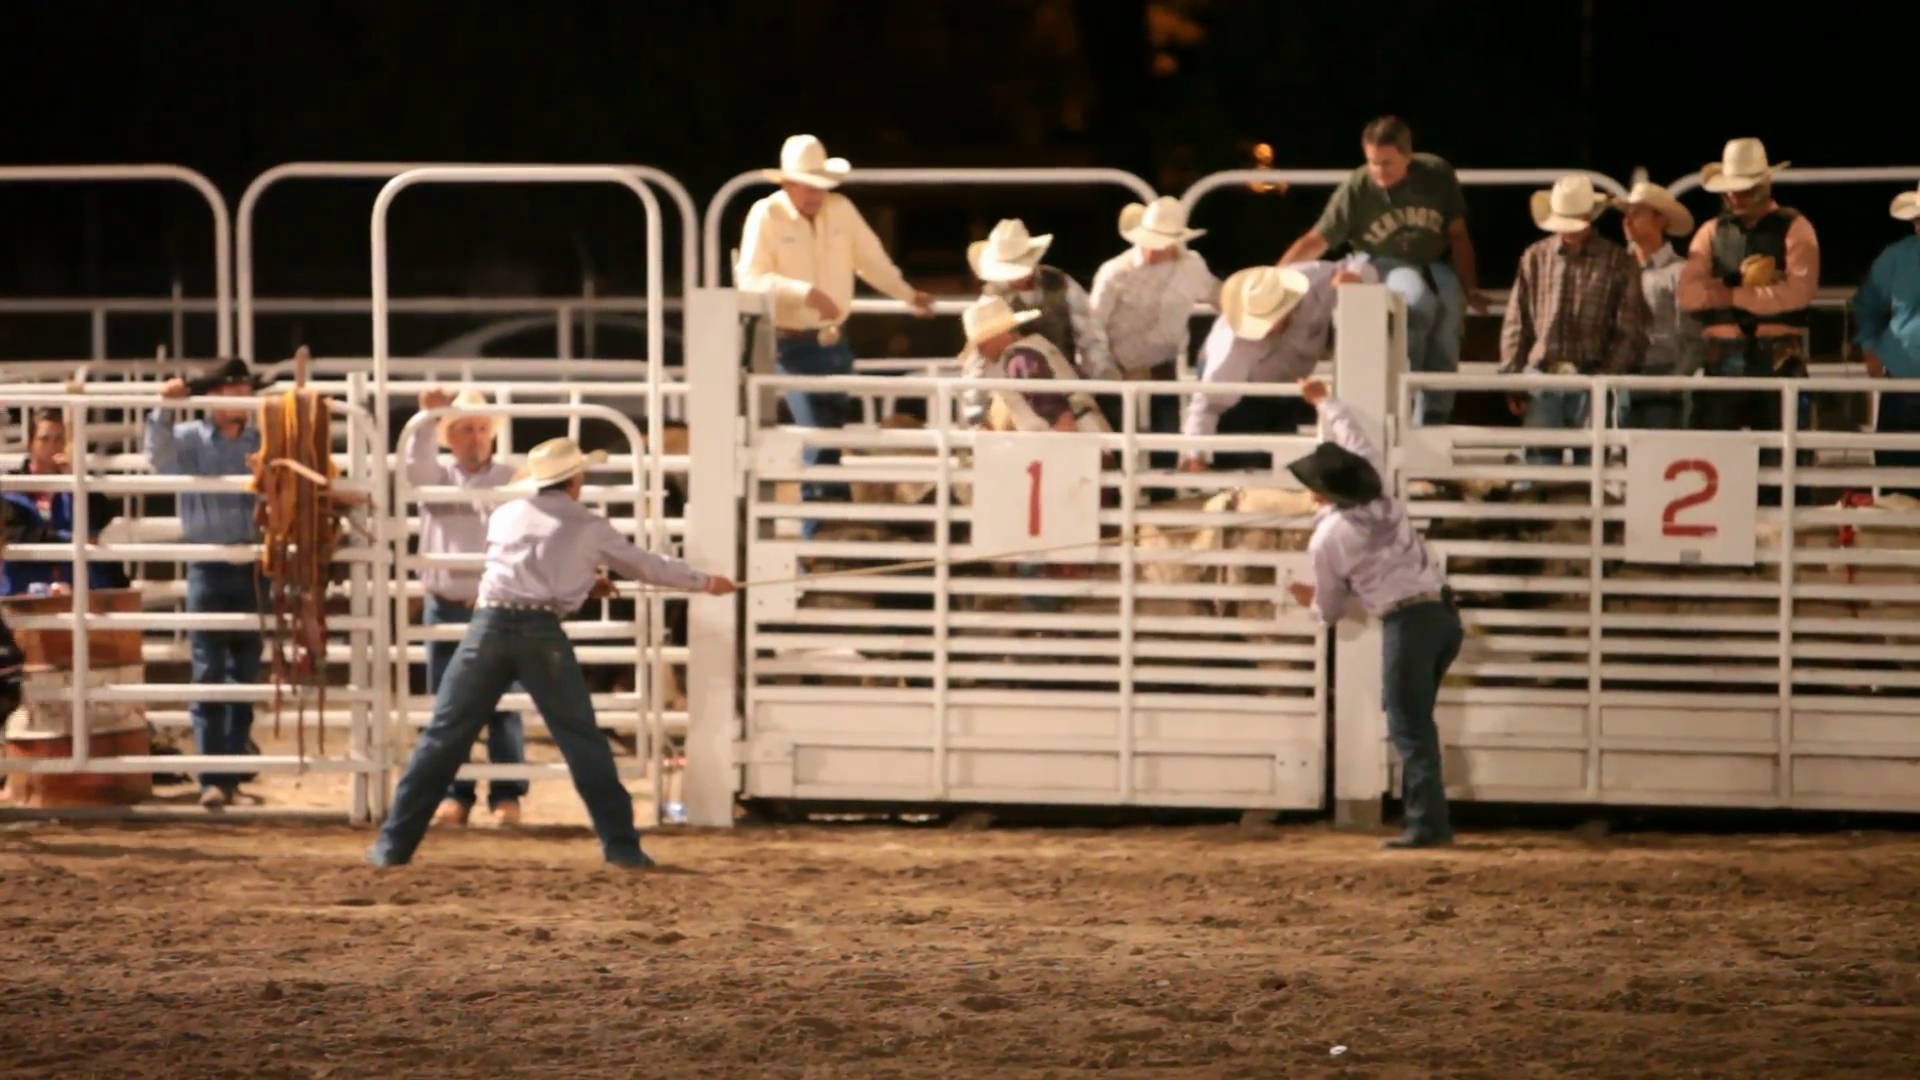 Bull rider getting ready rodeo at night P HD 1013 Stock Video Footage -  VideoBlocks - Bull Riding PNG HD